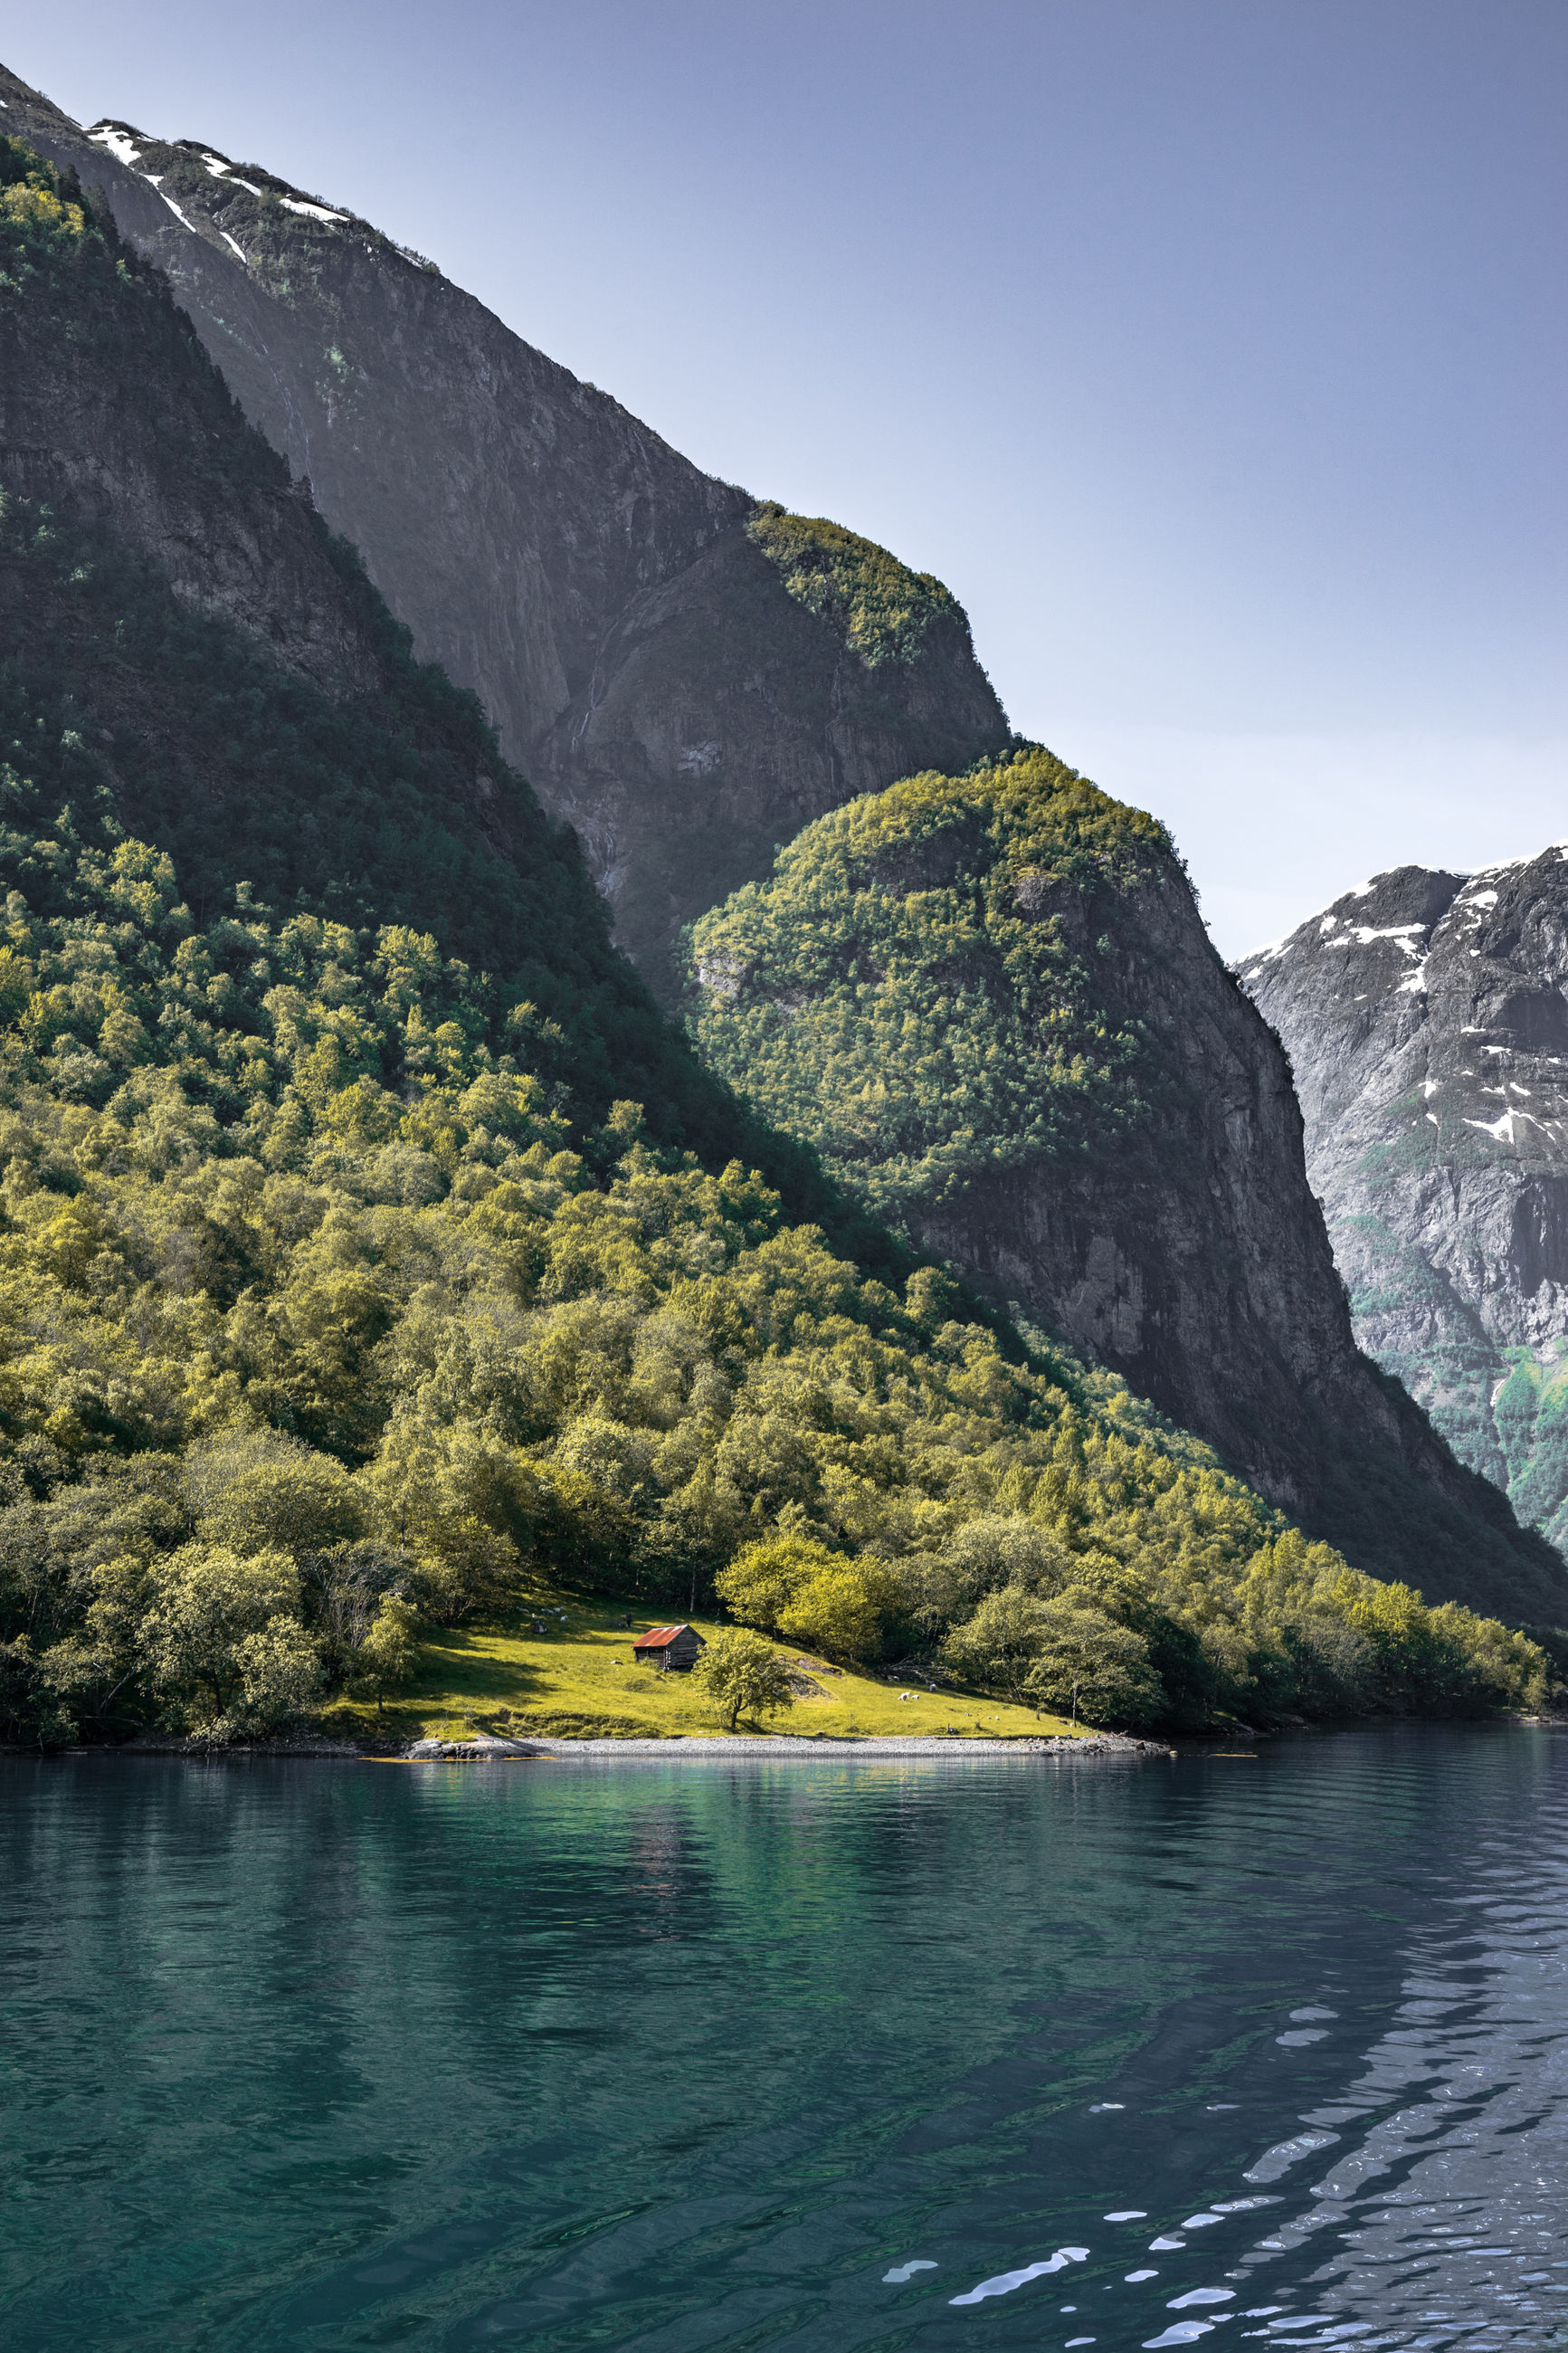 SCENIC VIEW OF RIVER BY TREE MOUNTAINS AGAINST CLEAR SKY